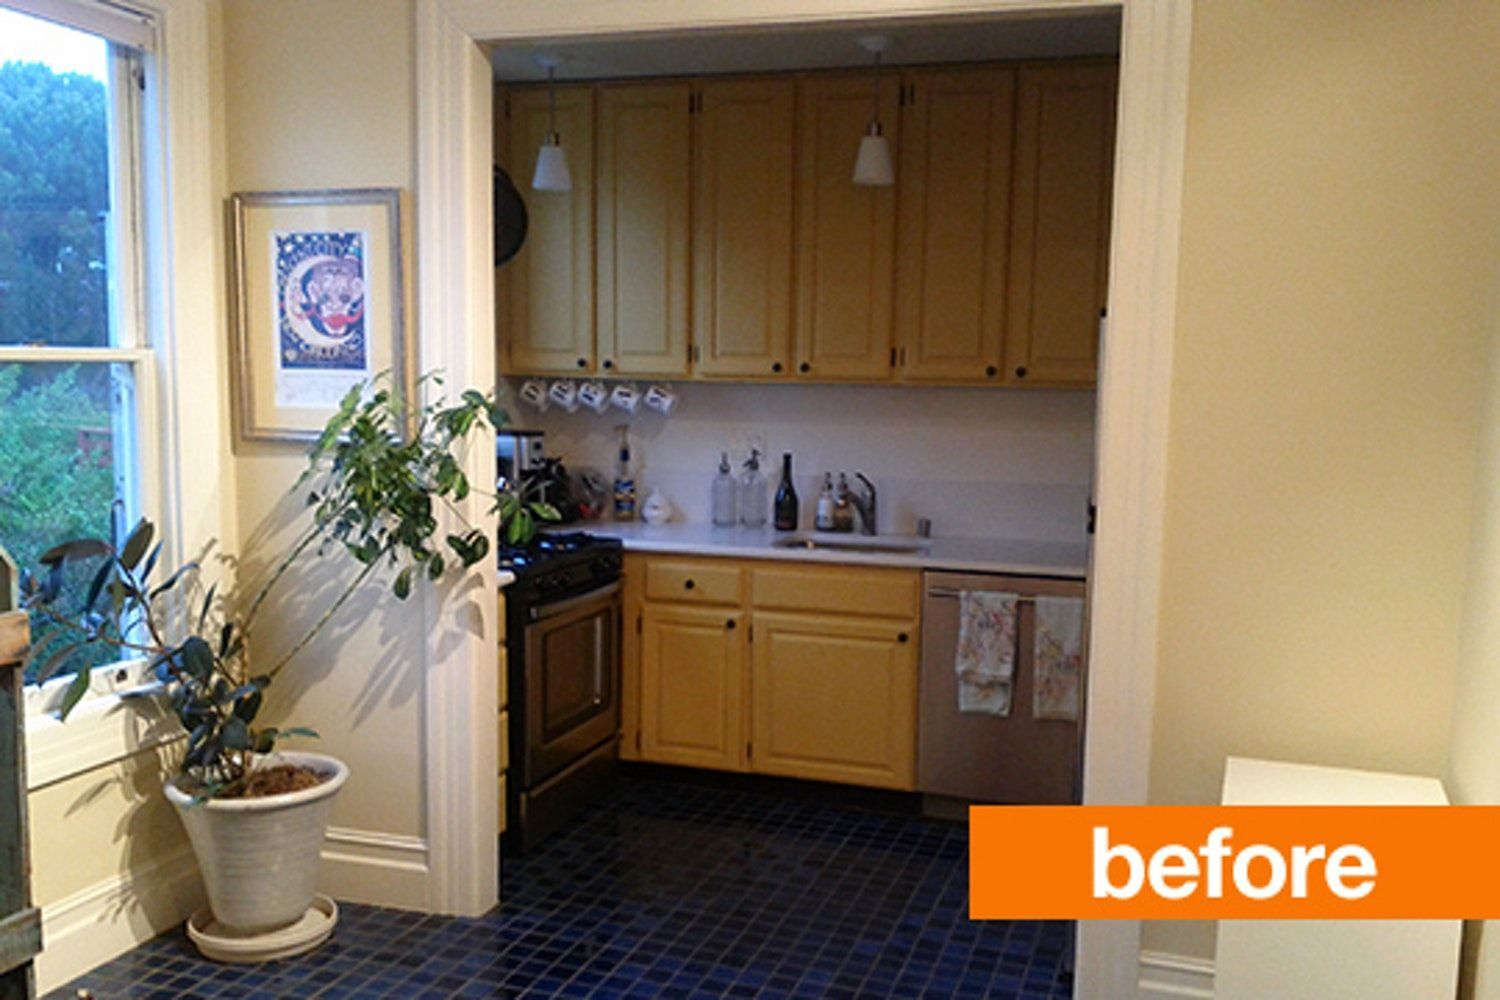 Before And After Kyle's Kitchen Remodel  Bathroom Before And New How To Design A Kitchen Remodel Design Ideas